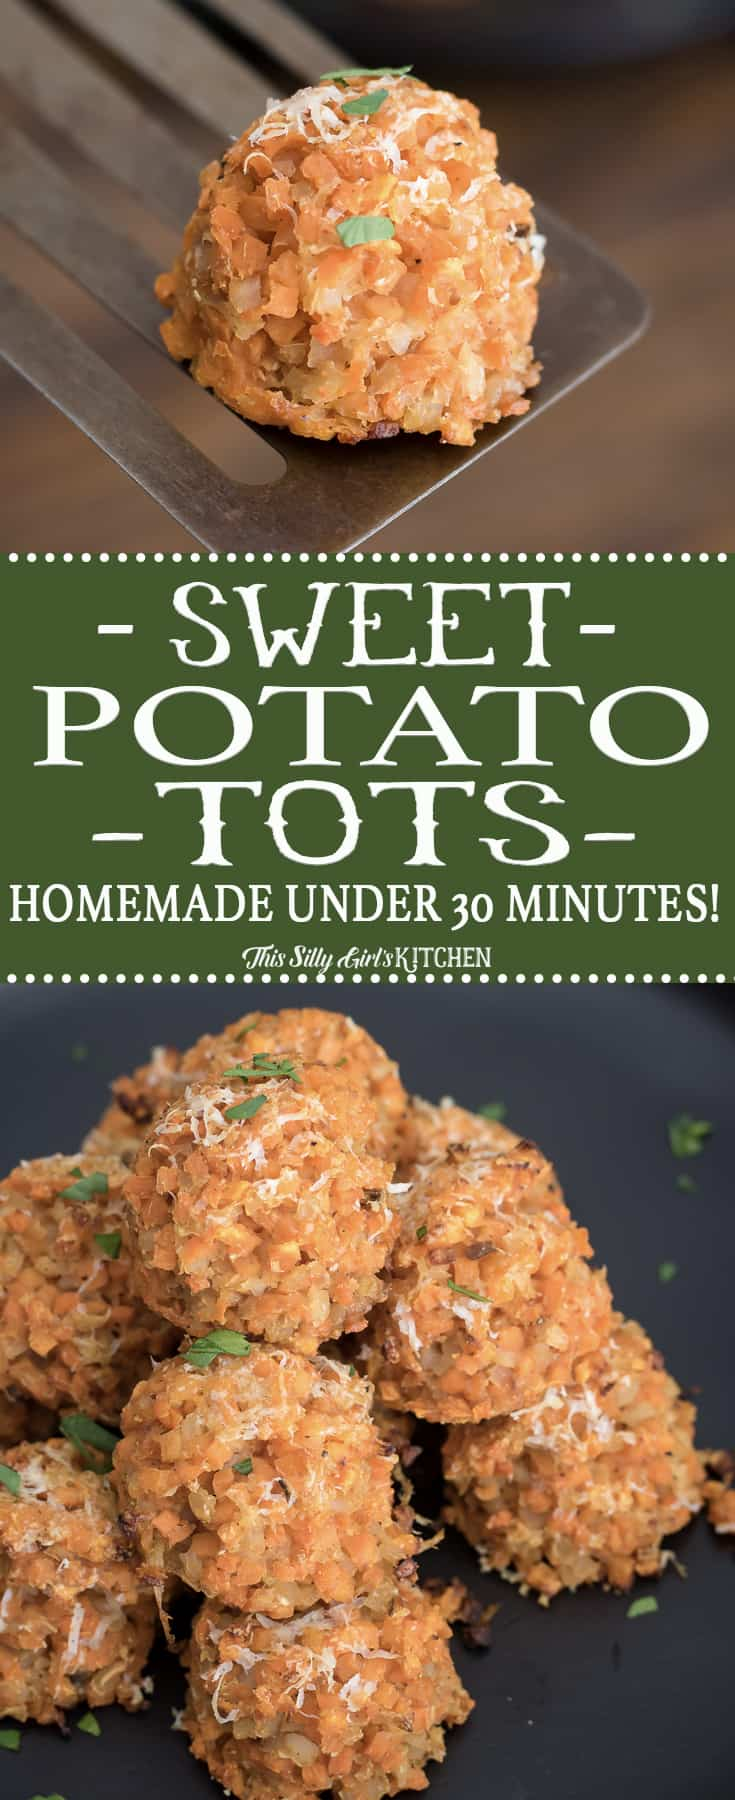 Homemade Sweet Potato Tots, a delicious, flavorful healthy alternative ready in under 30 minutes! #Recipe from ThisSillyGirlsKitchen.com #sweetpotato #tatertots #sweetpotatotots